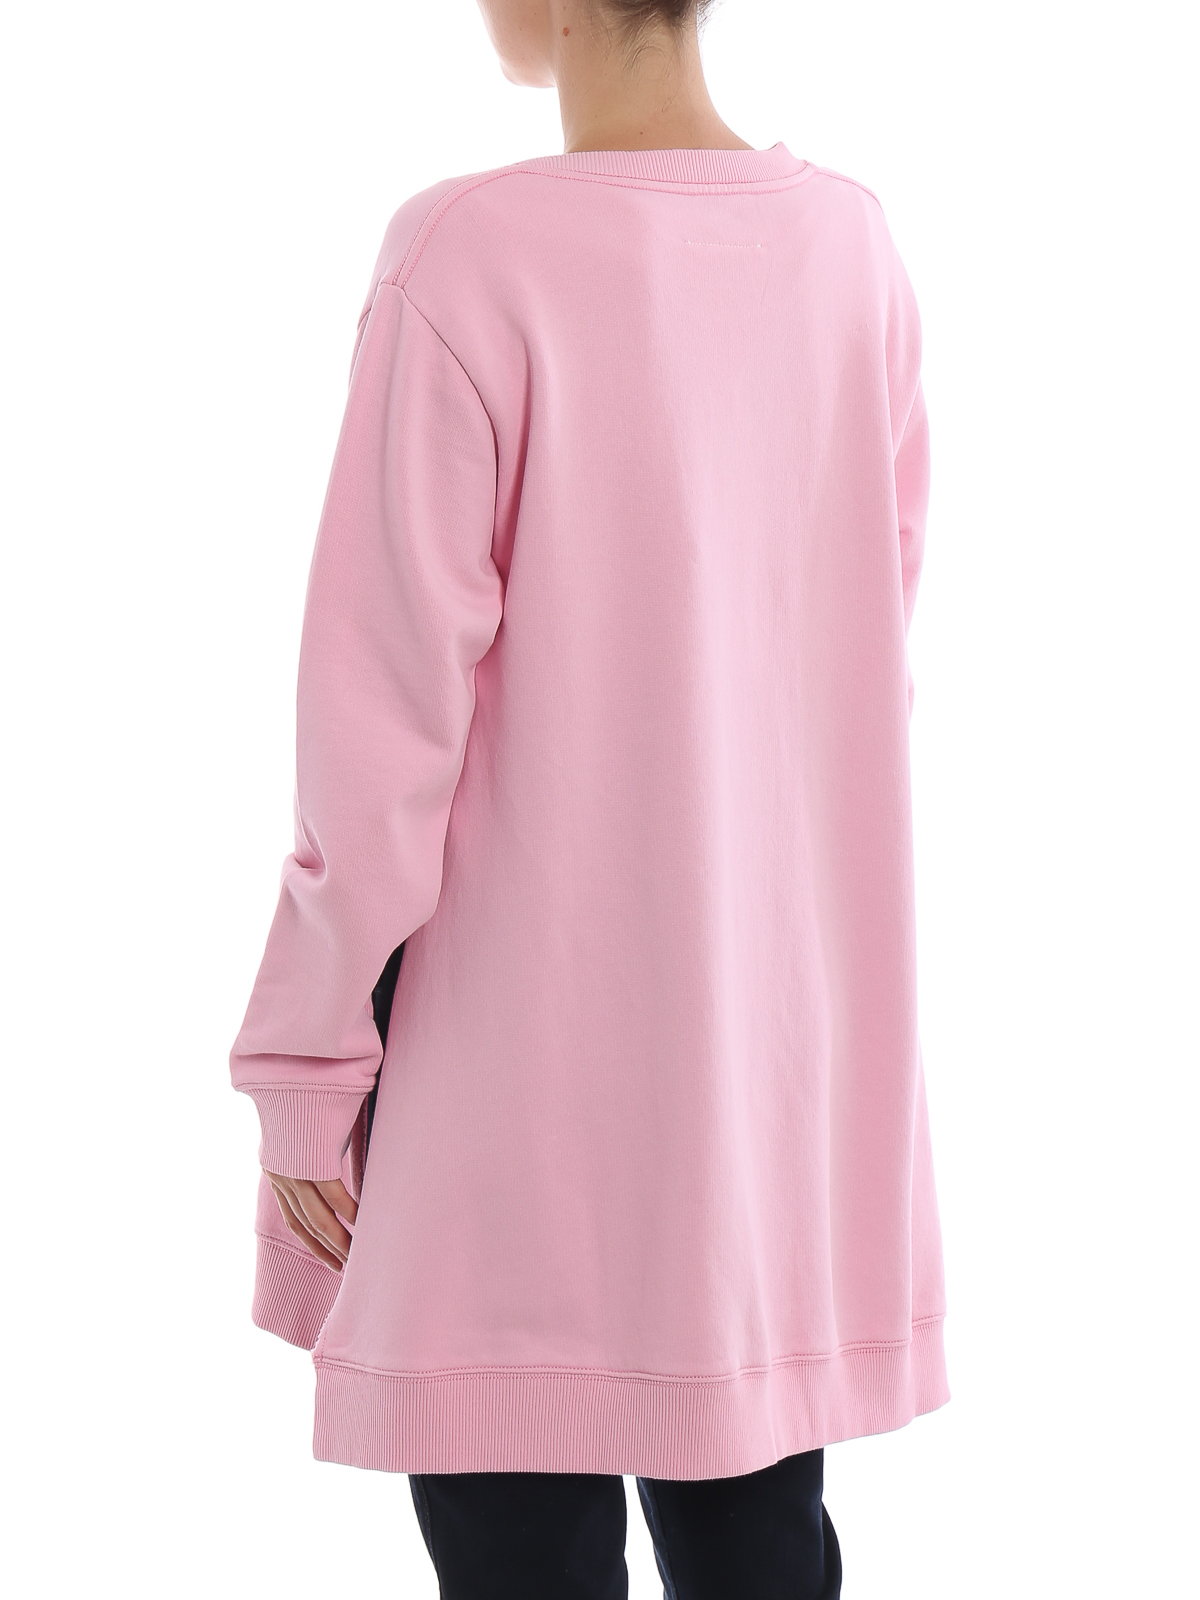 Rose Sweat Shop Shirts Online Maison Mm6 Margiela Tggq5